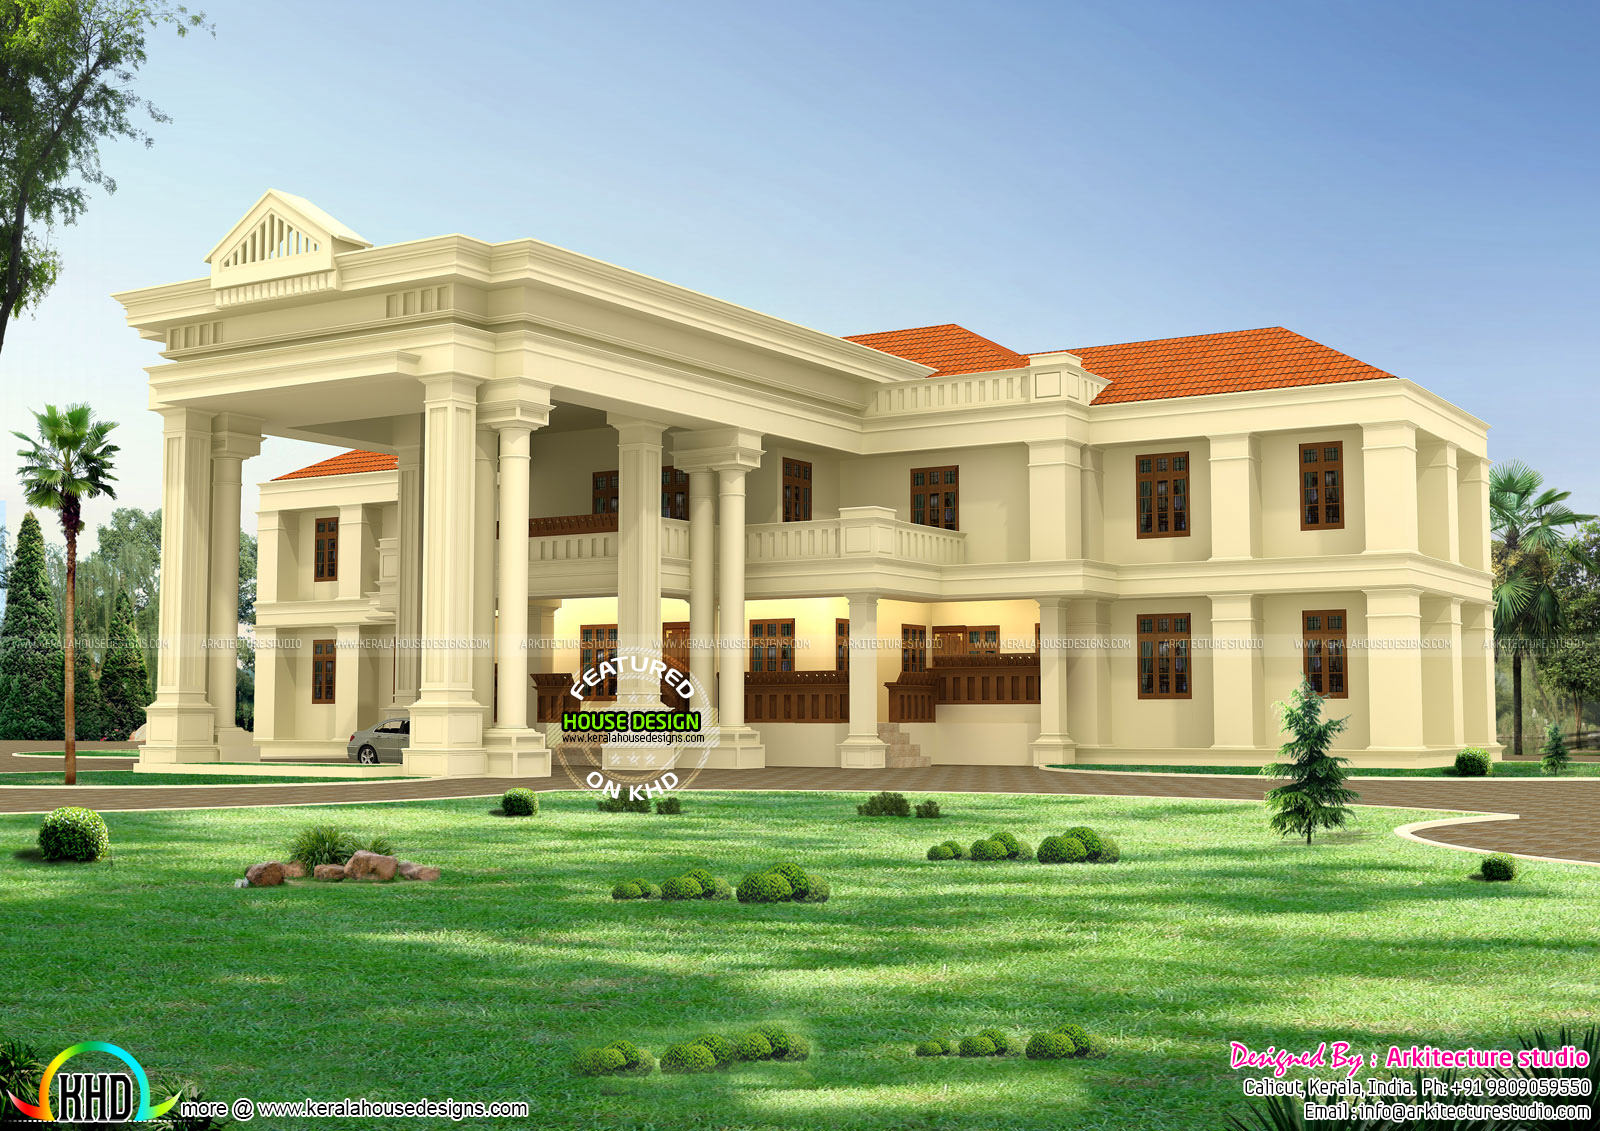 Long pillar colonial home design kerala home design and for Colonial style home design in kerala